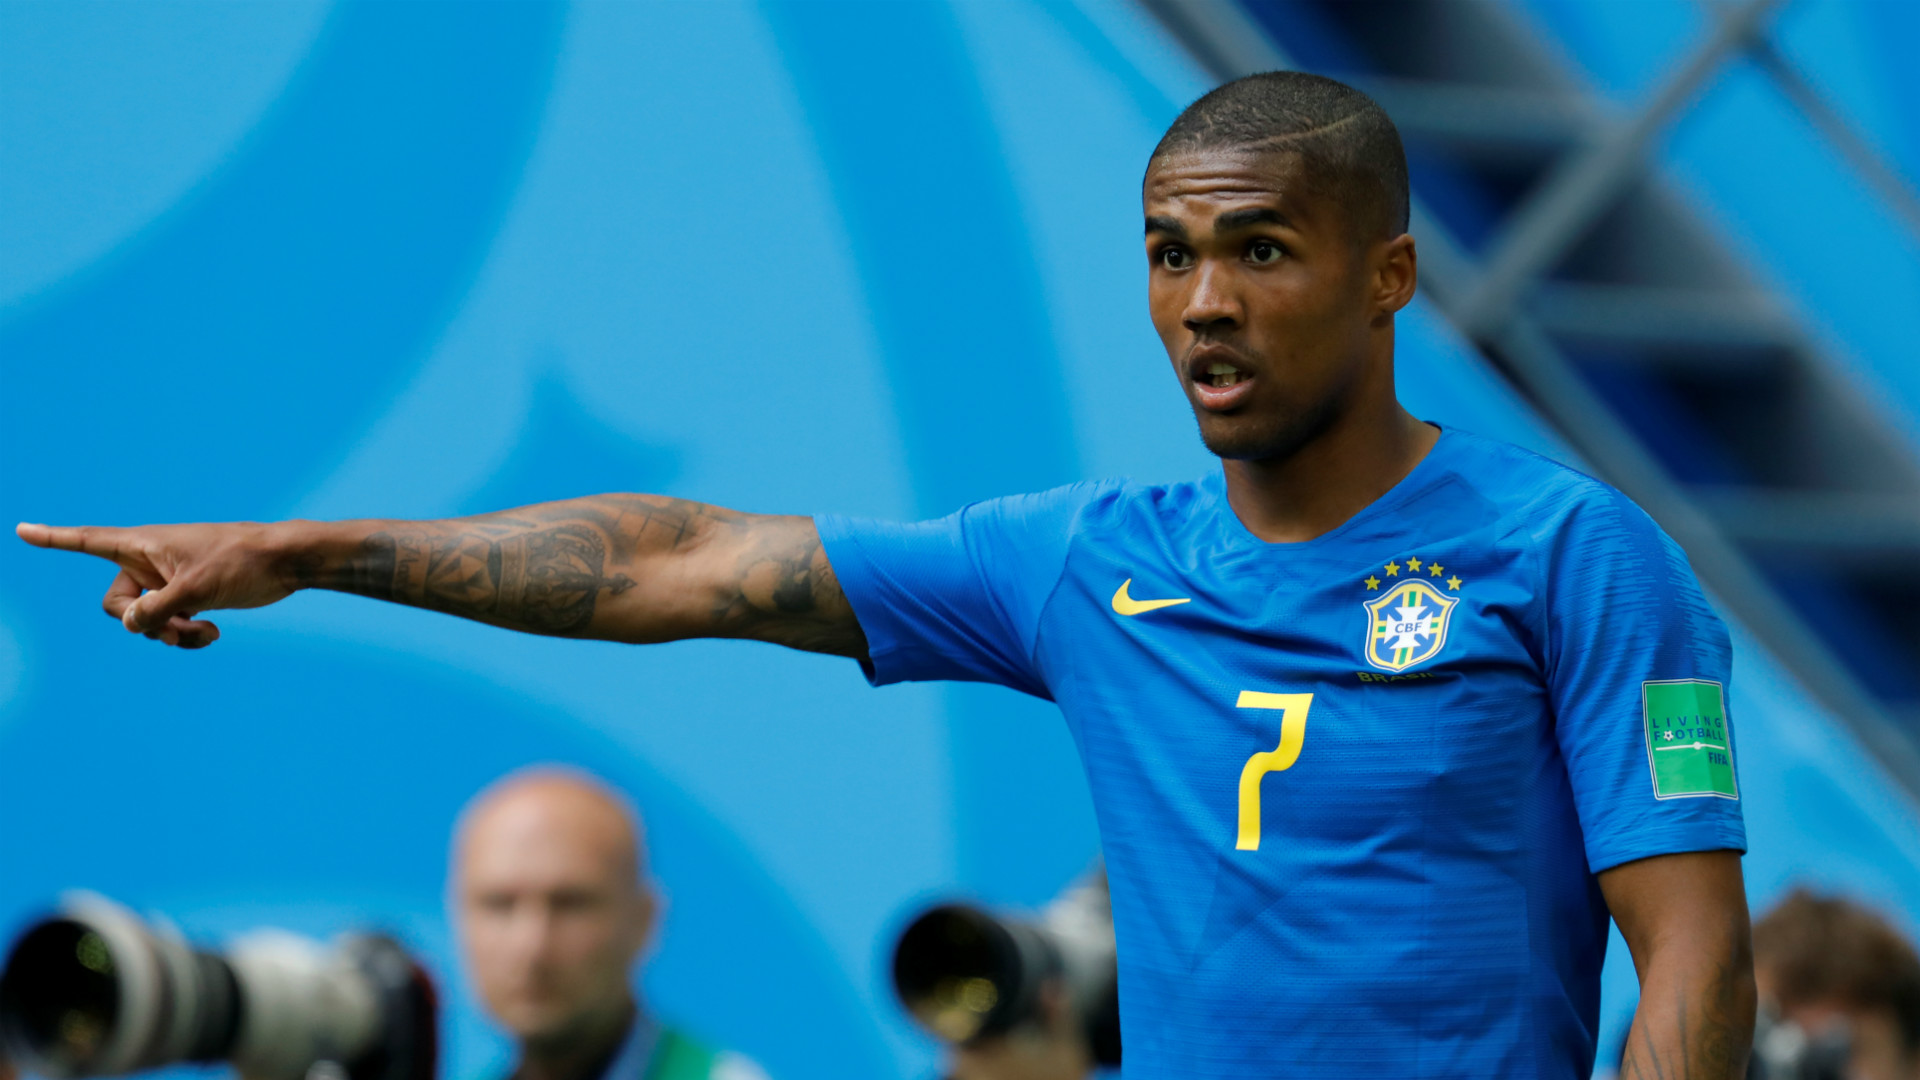 Douglas Costa Brazil vs Costa Rica World Cup 2018